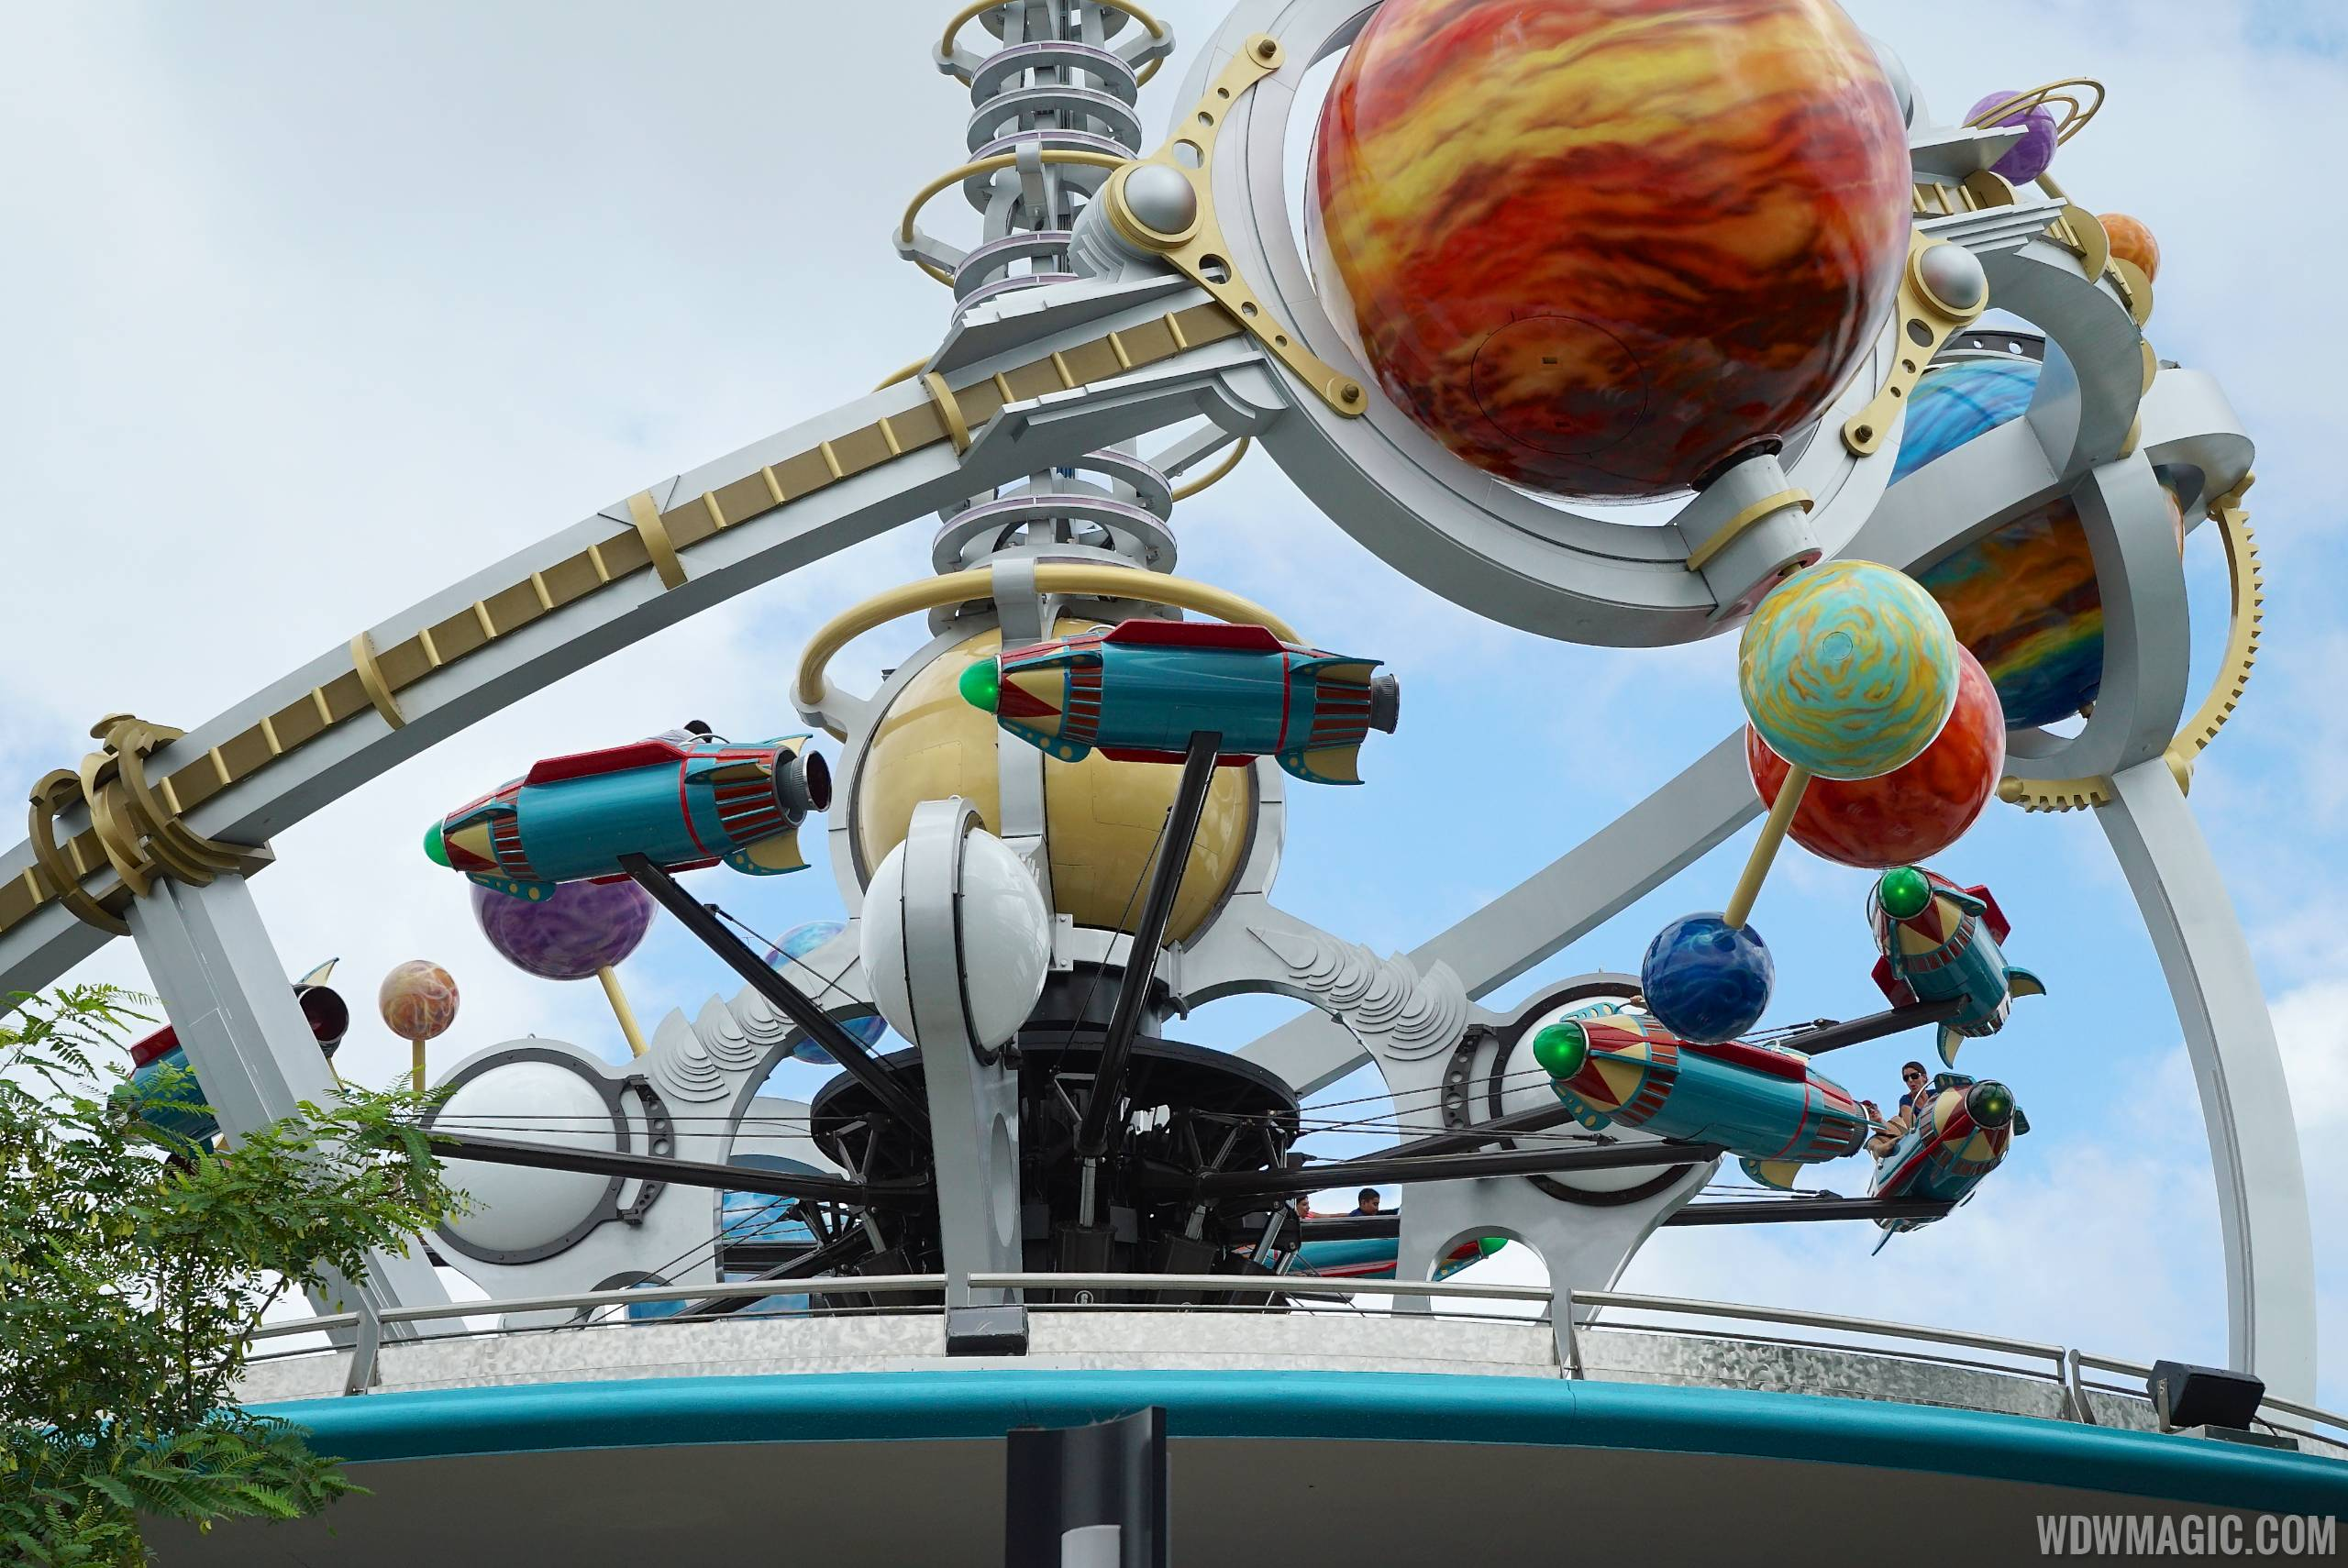 New look Astro Orbiter